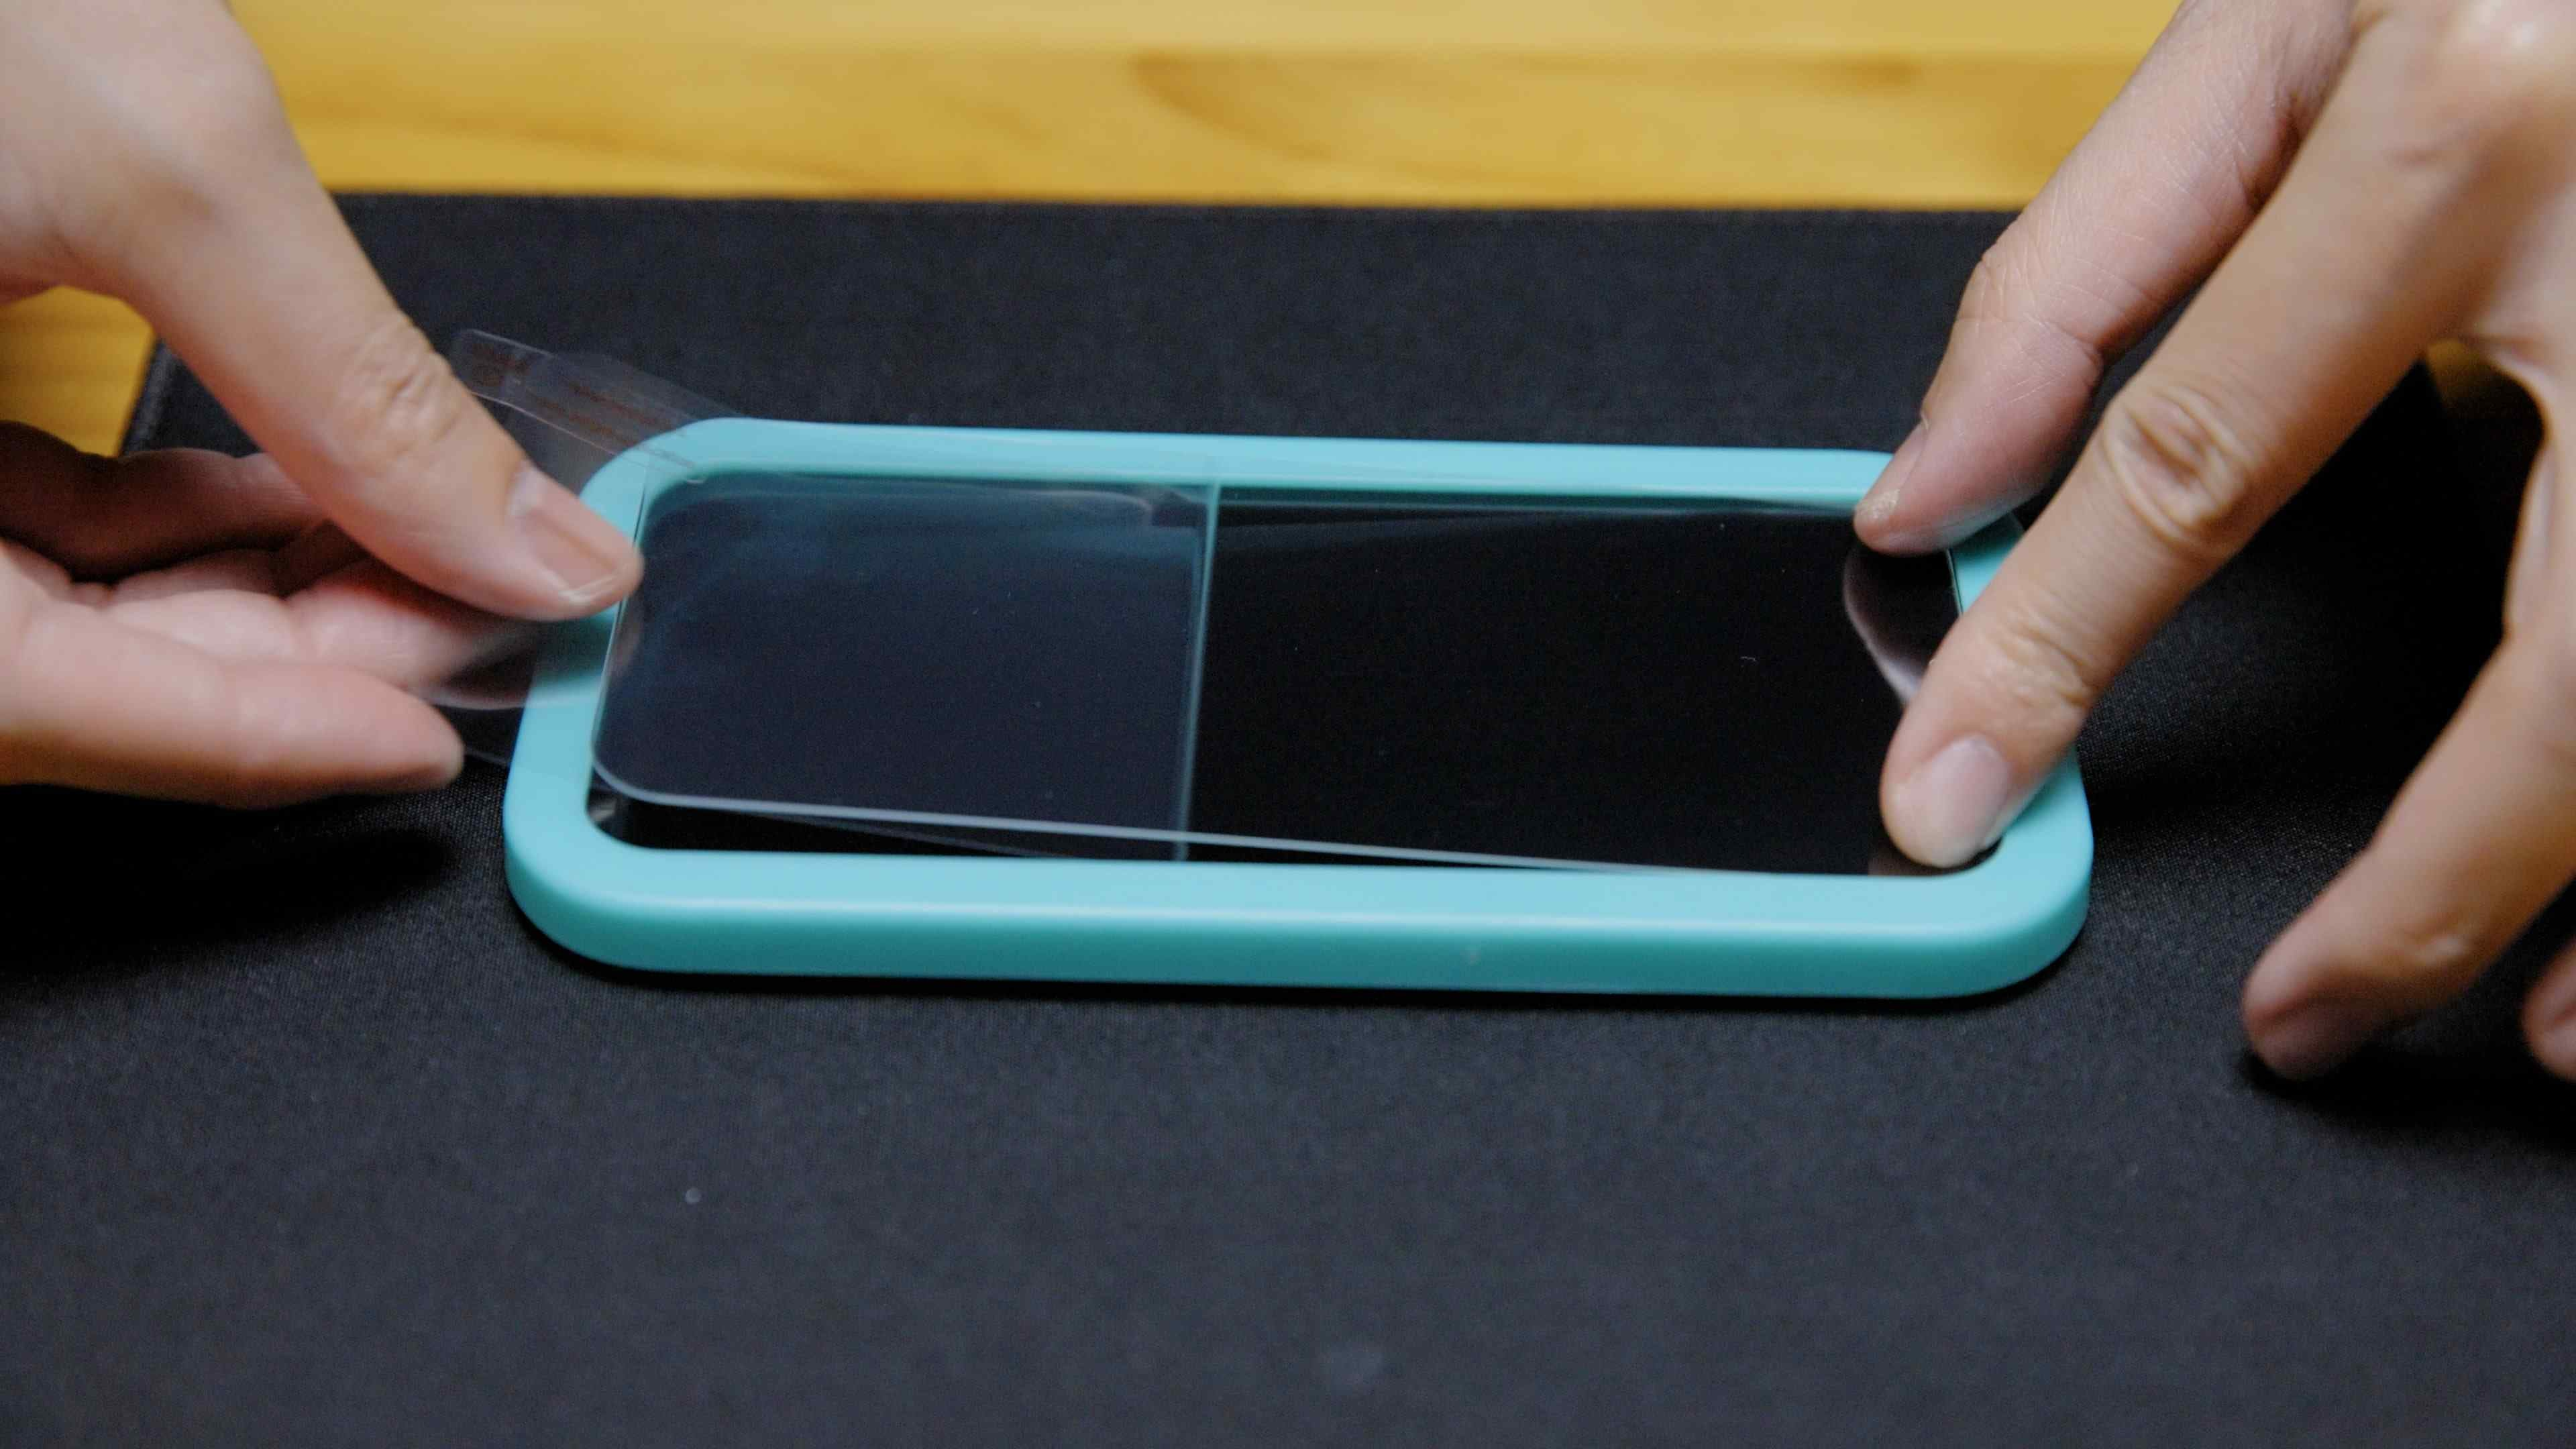 Screen Protector Installation Guide Step 4 : Screen Protector Installation